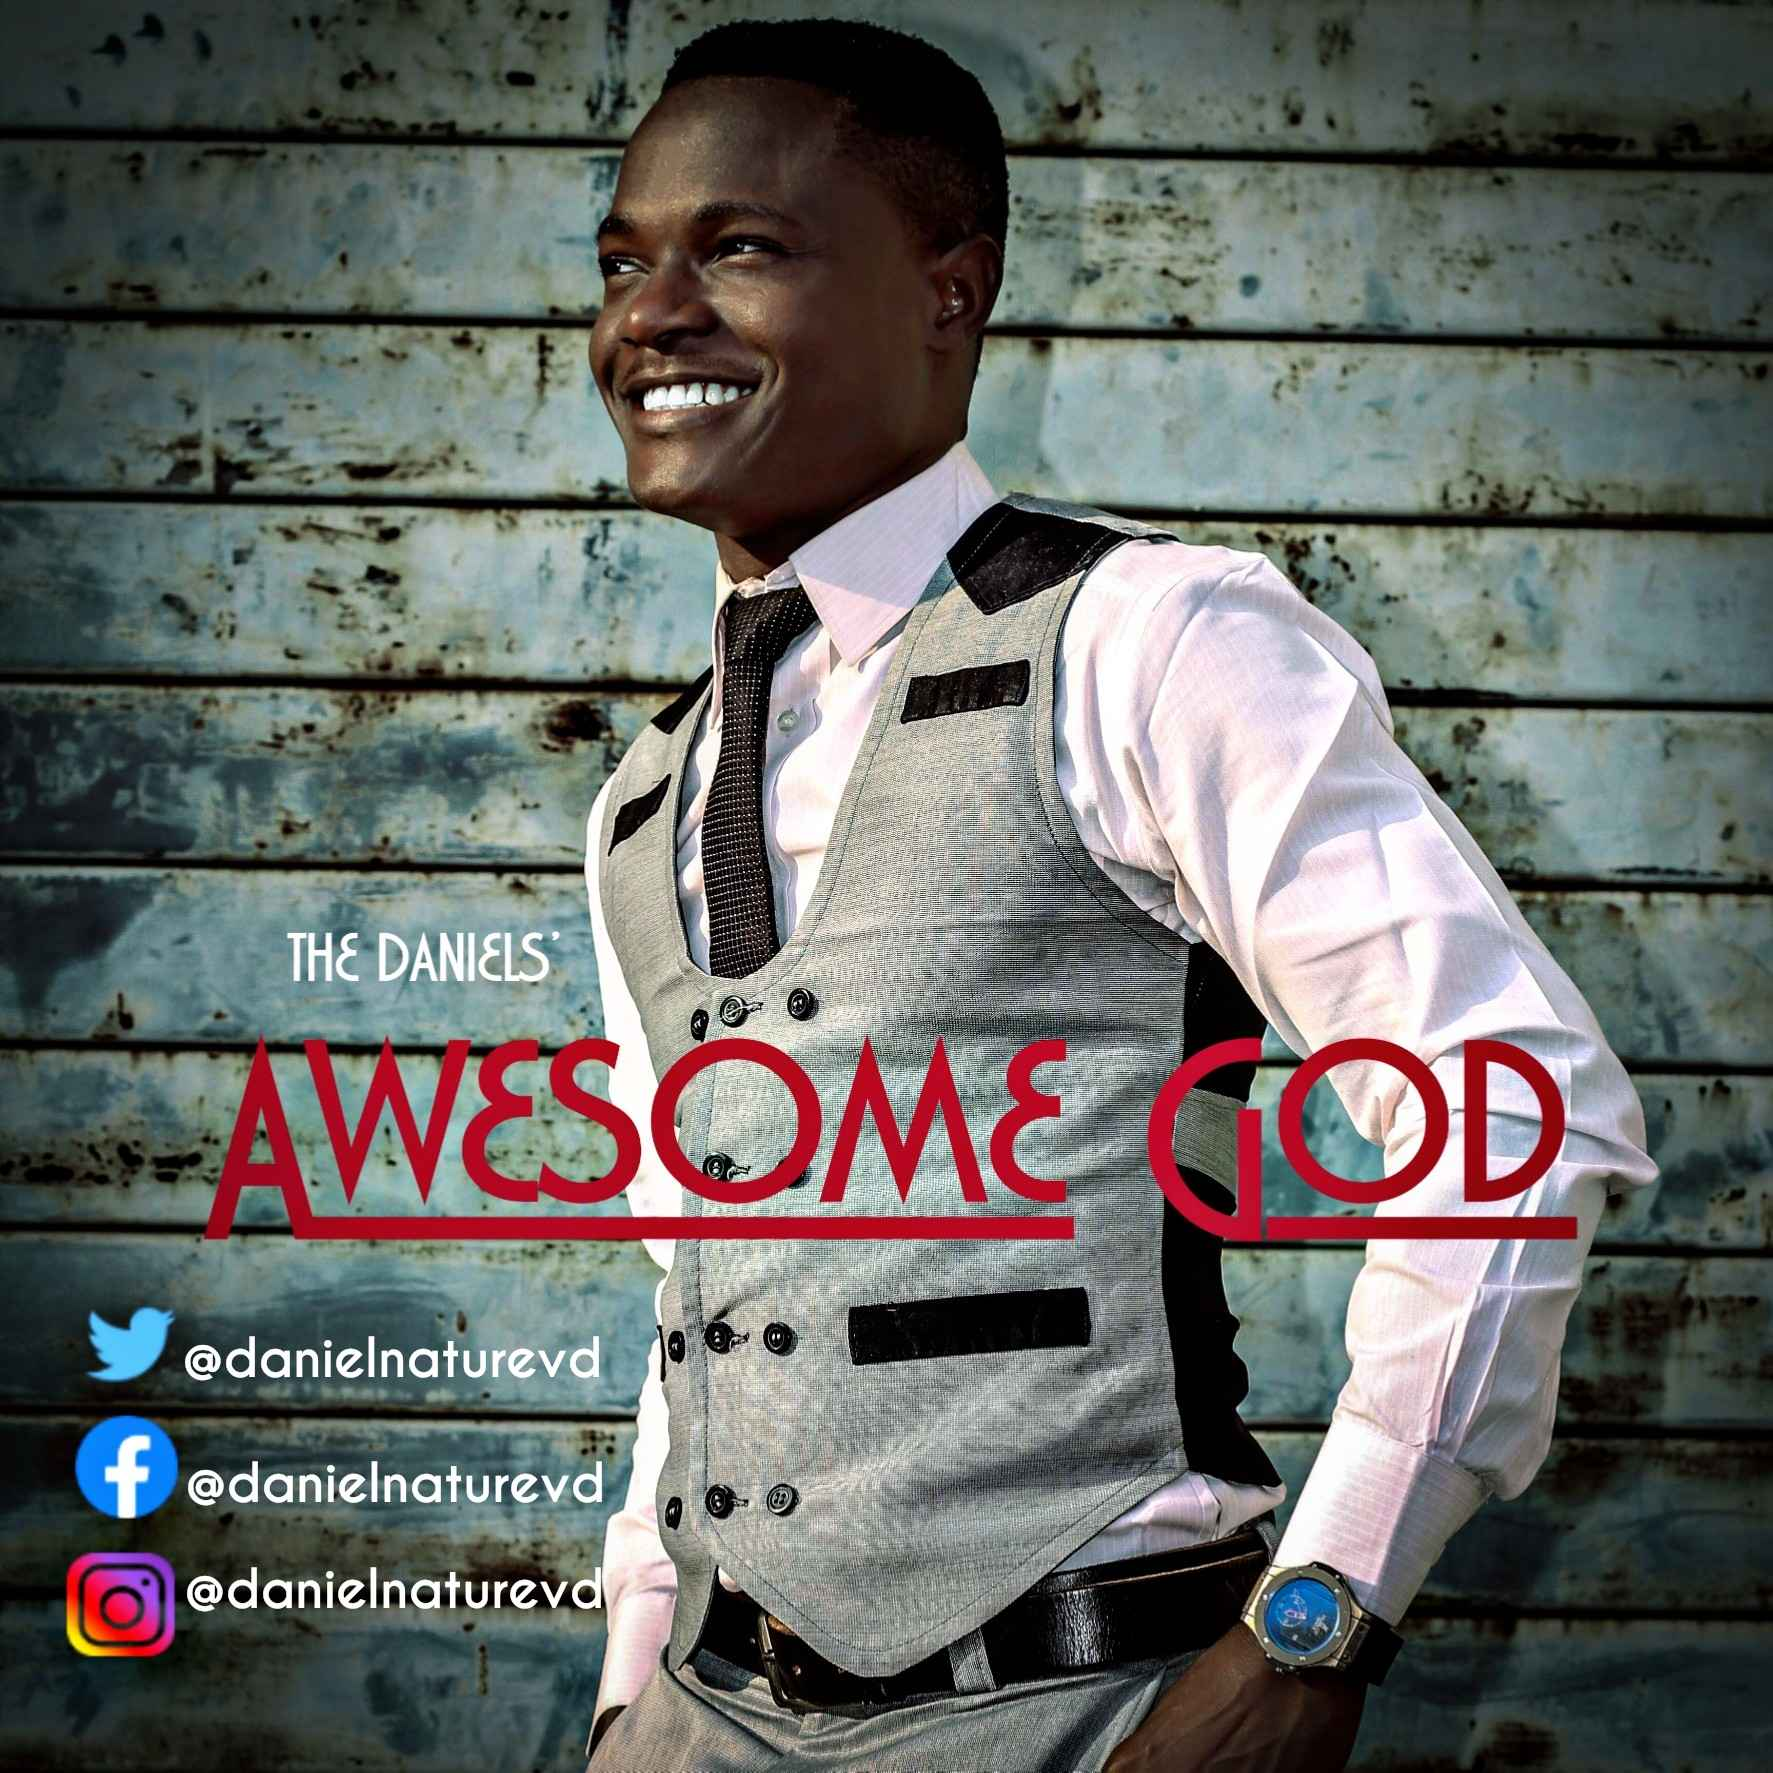 AWESOME GOD - TheDaniels'  [@danielnaturevd]